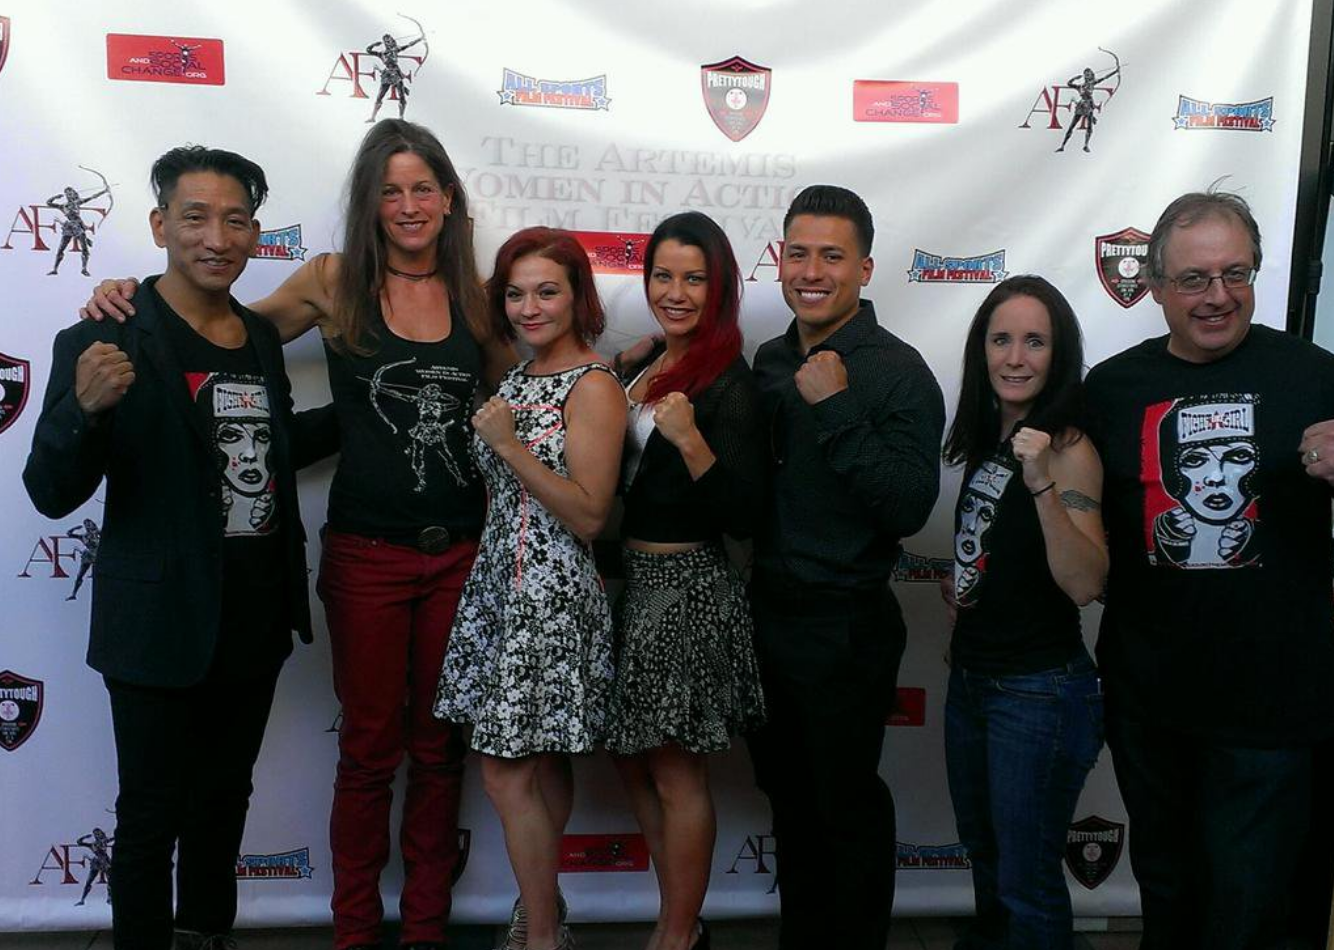 Gary Lei Melanie Wise Jill Morley Maureen Shae Tracy Konas N Crew Fight Girl